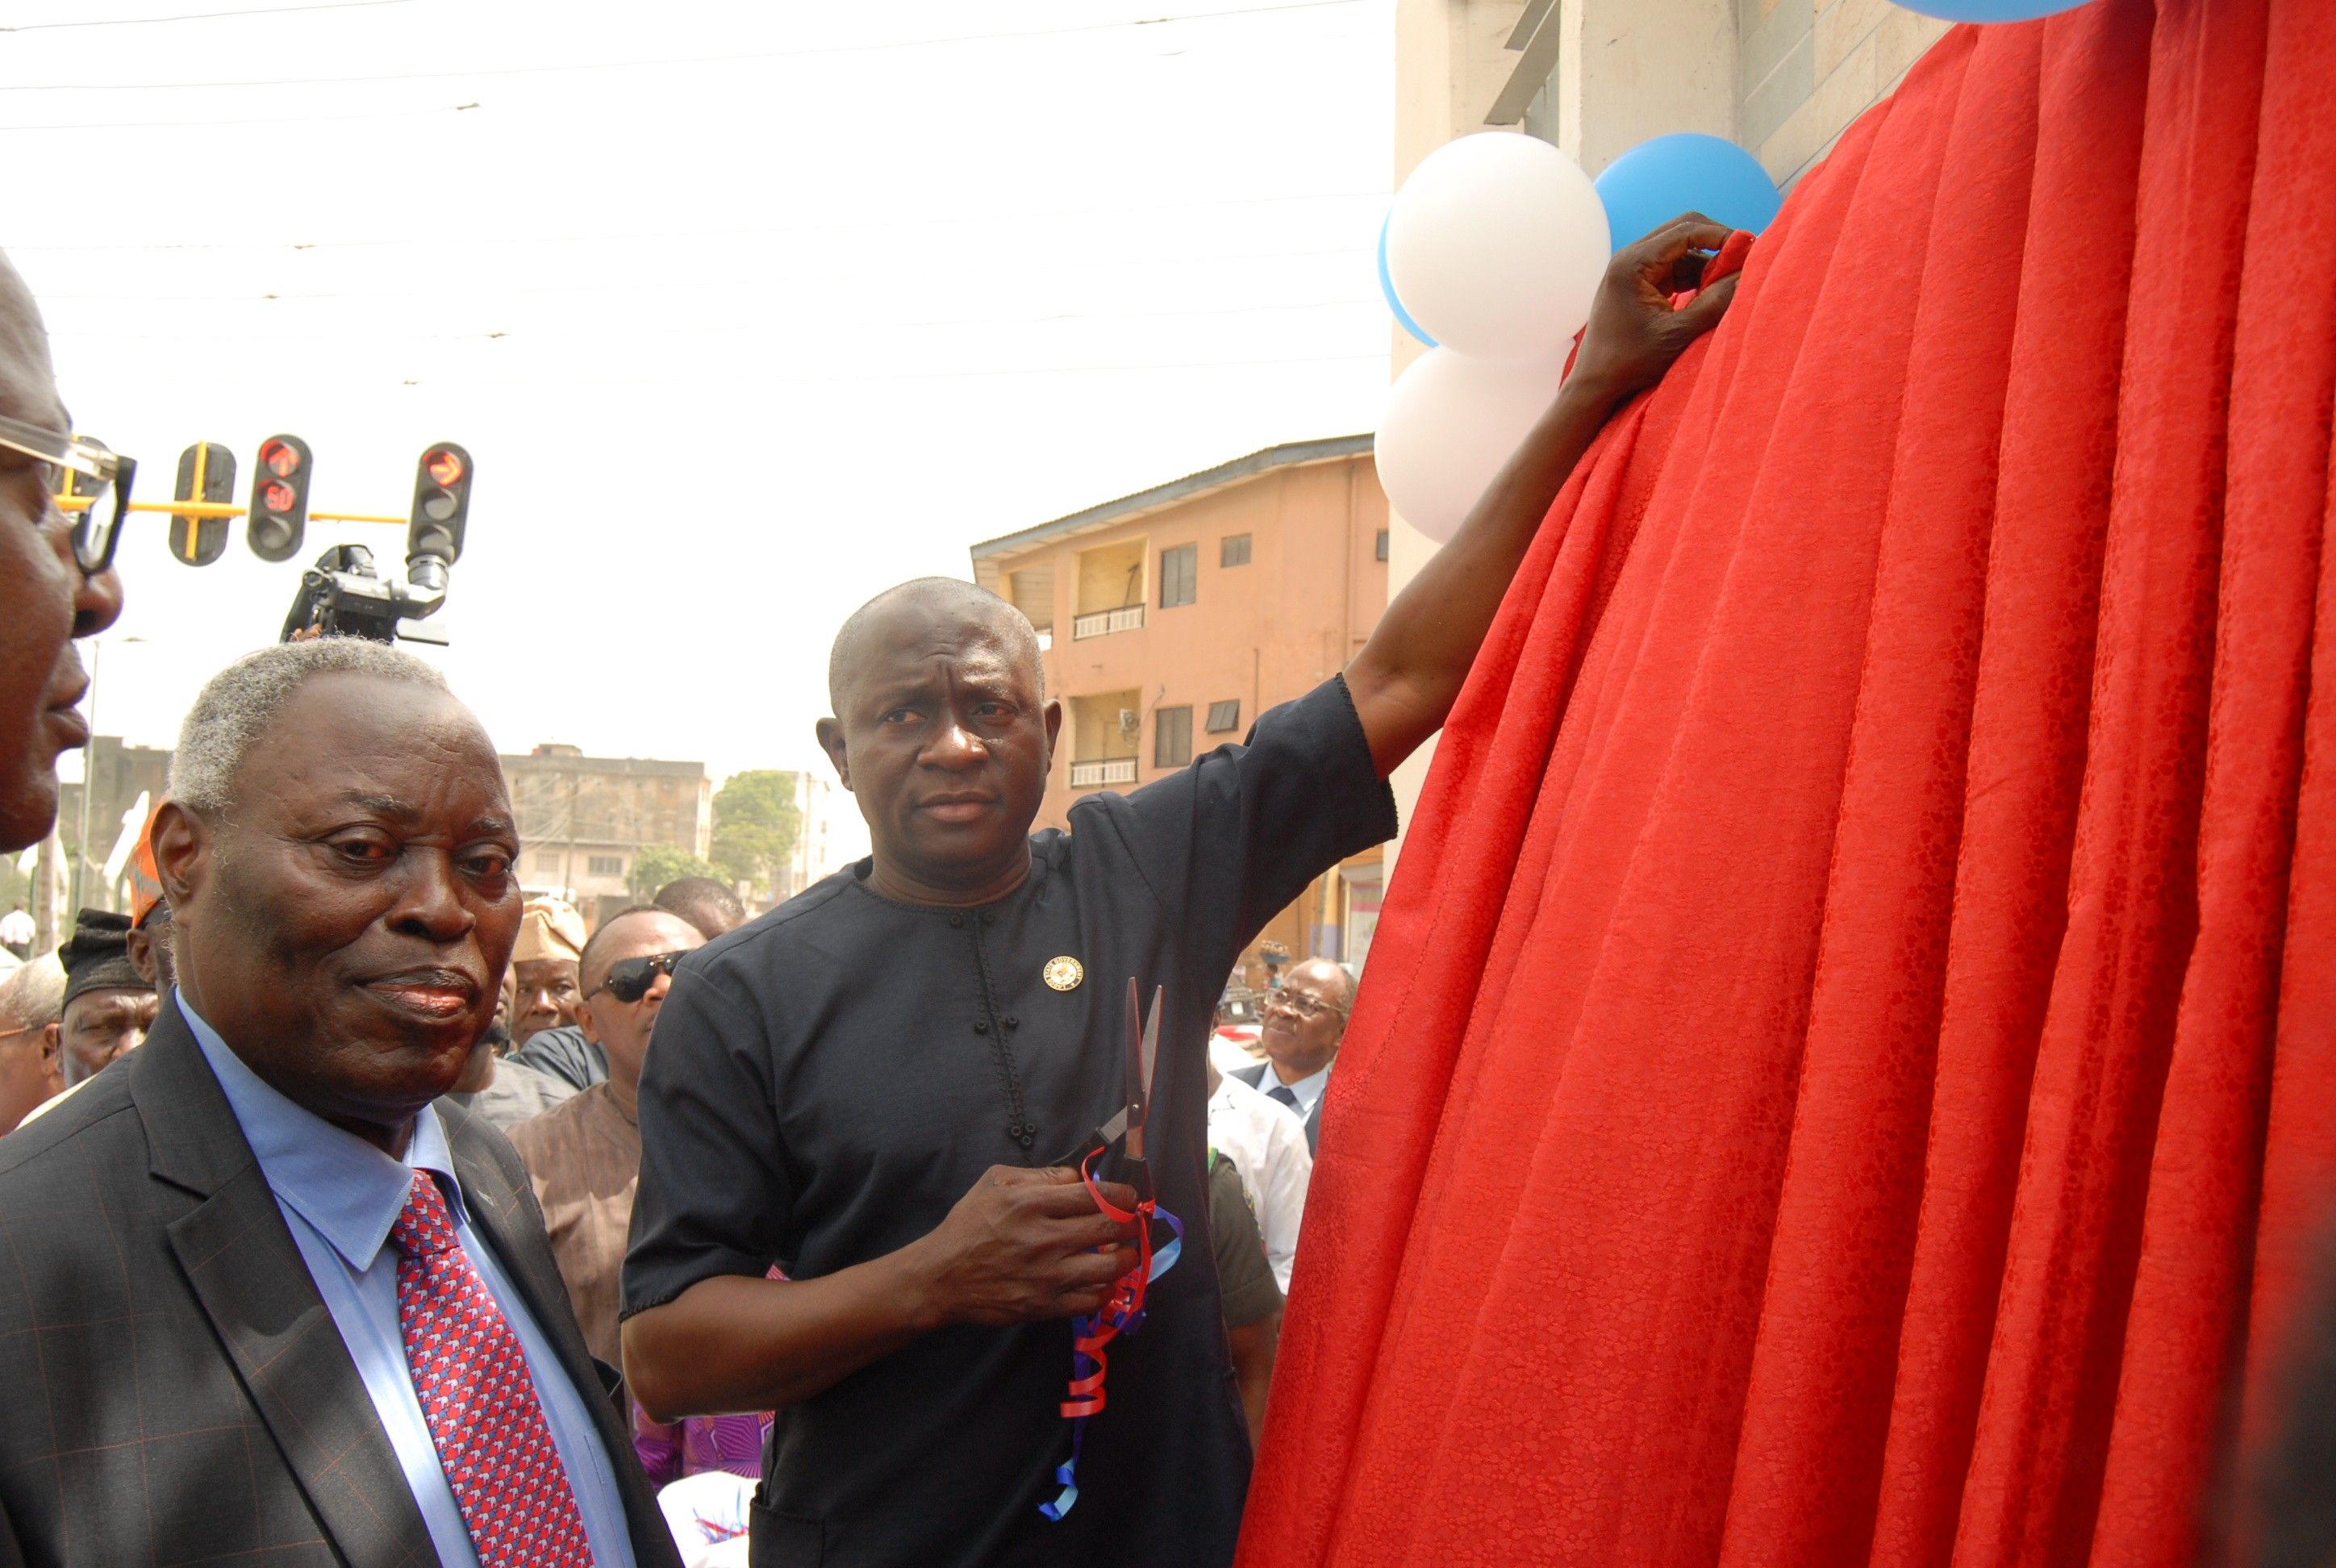 Deeper Life Commissions bridge, other projects, praise Ambode for infrastructure development